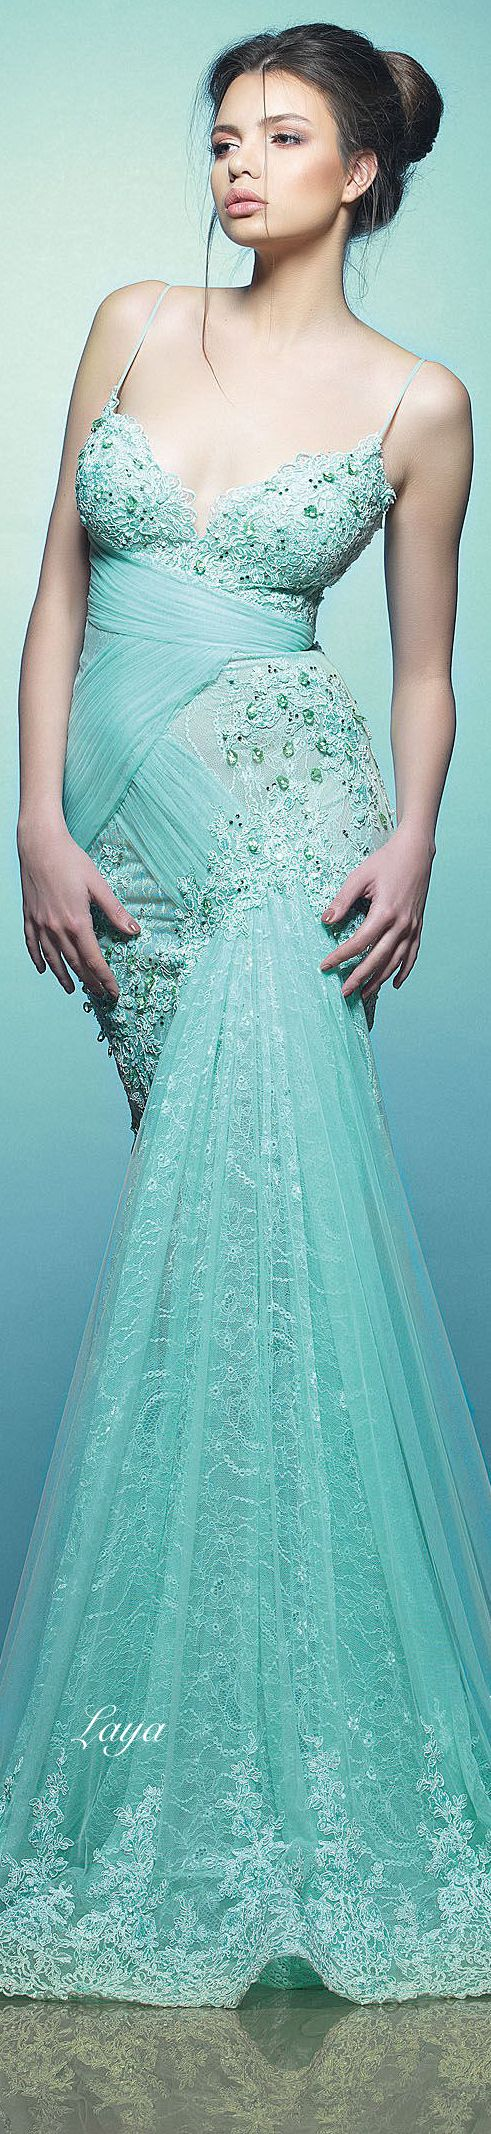 1130 best Great extraordinary dresses images on Pinterest | Party ...